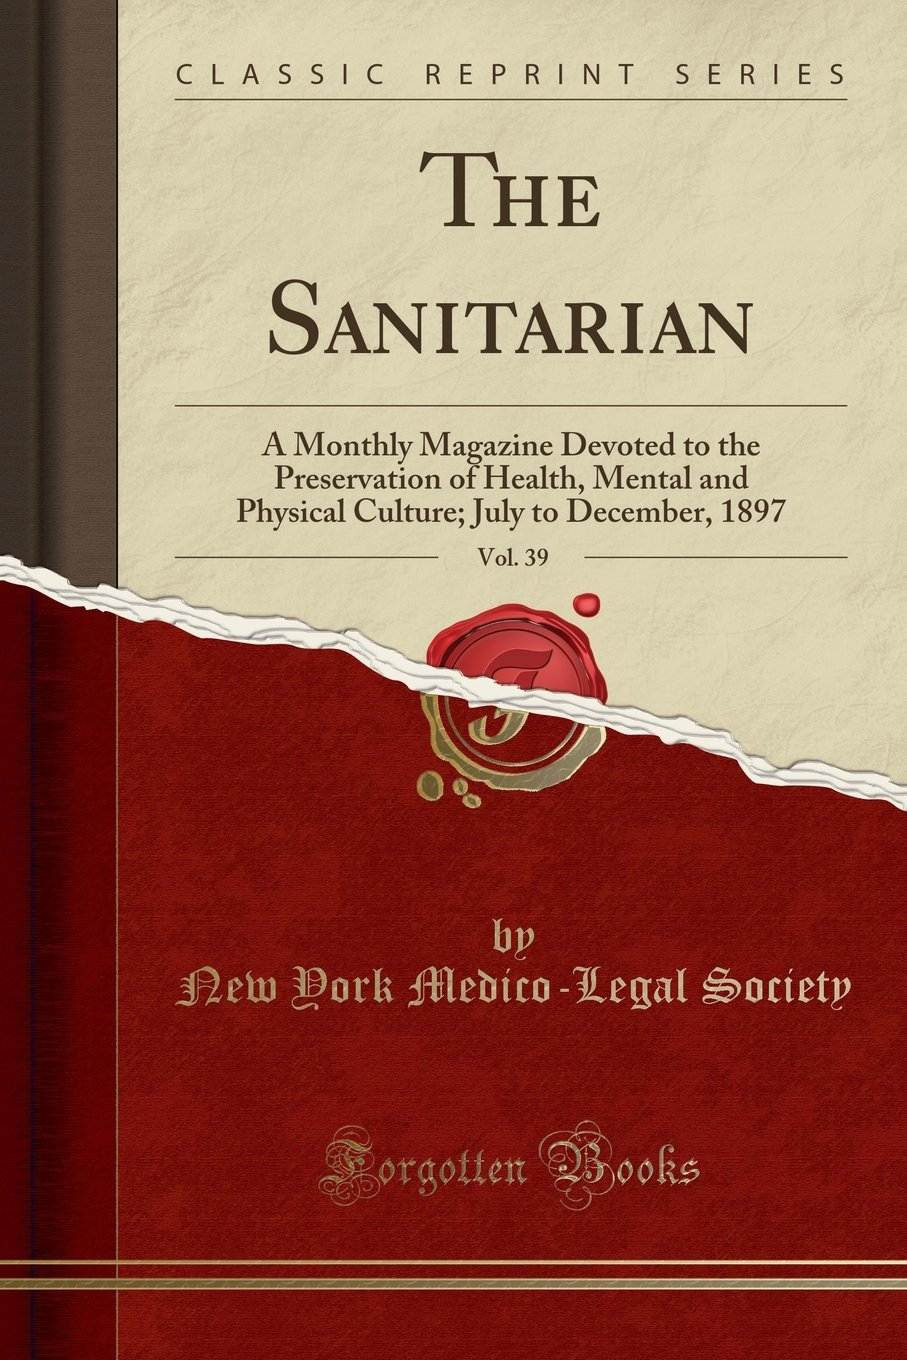 Download The Sanitarian, Vol. 39: A Monthly Magazine Devoted to the Preservation of Health, Mental and Physical Culture; July to December, 1897 (Classic Reprint) PDF